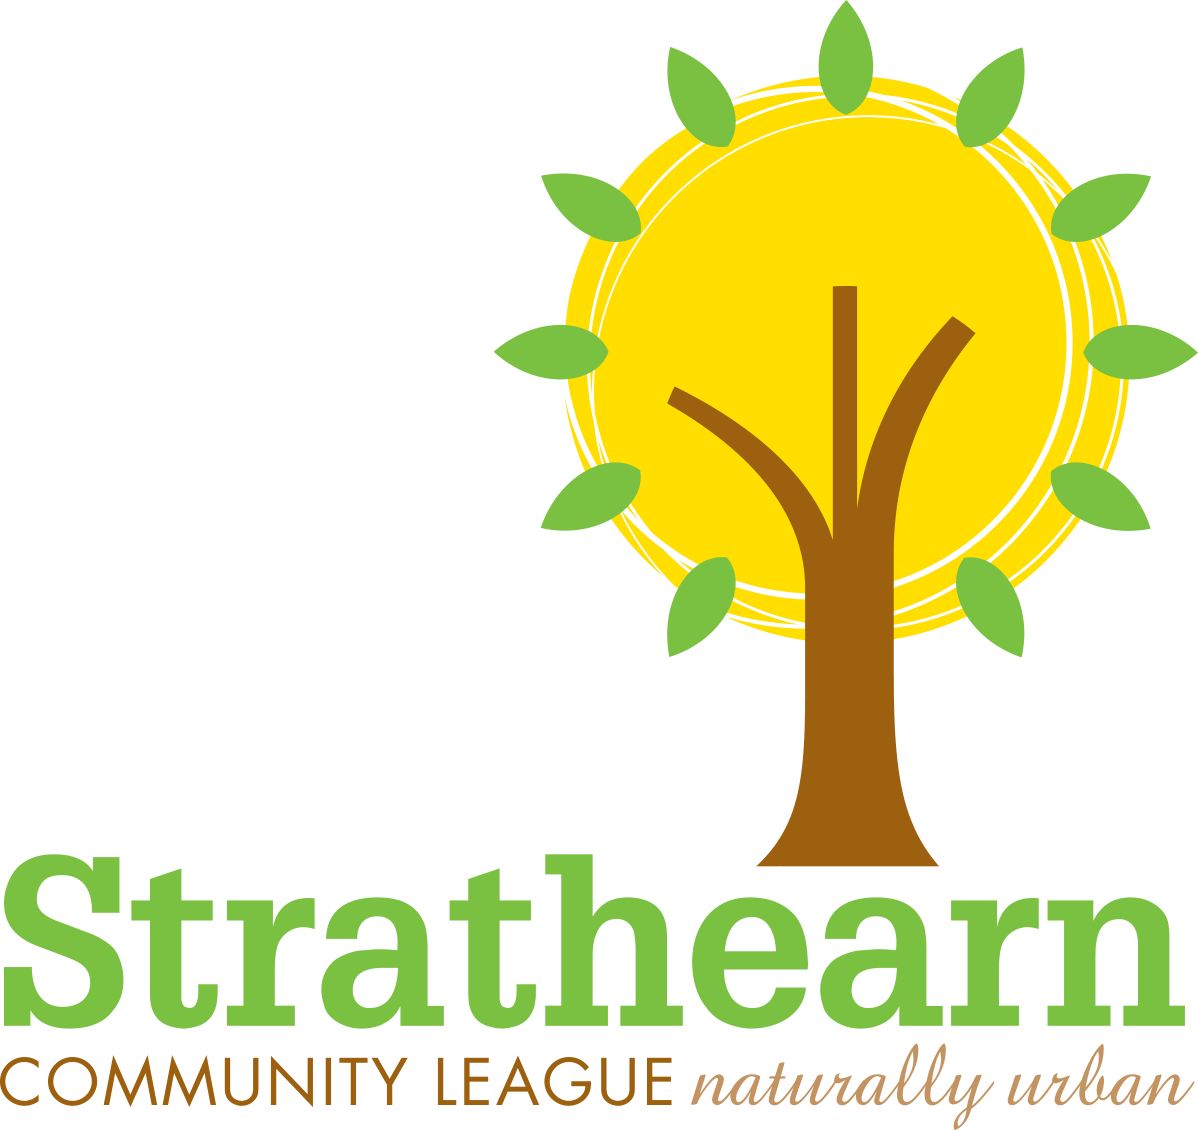 Strathearn Community League